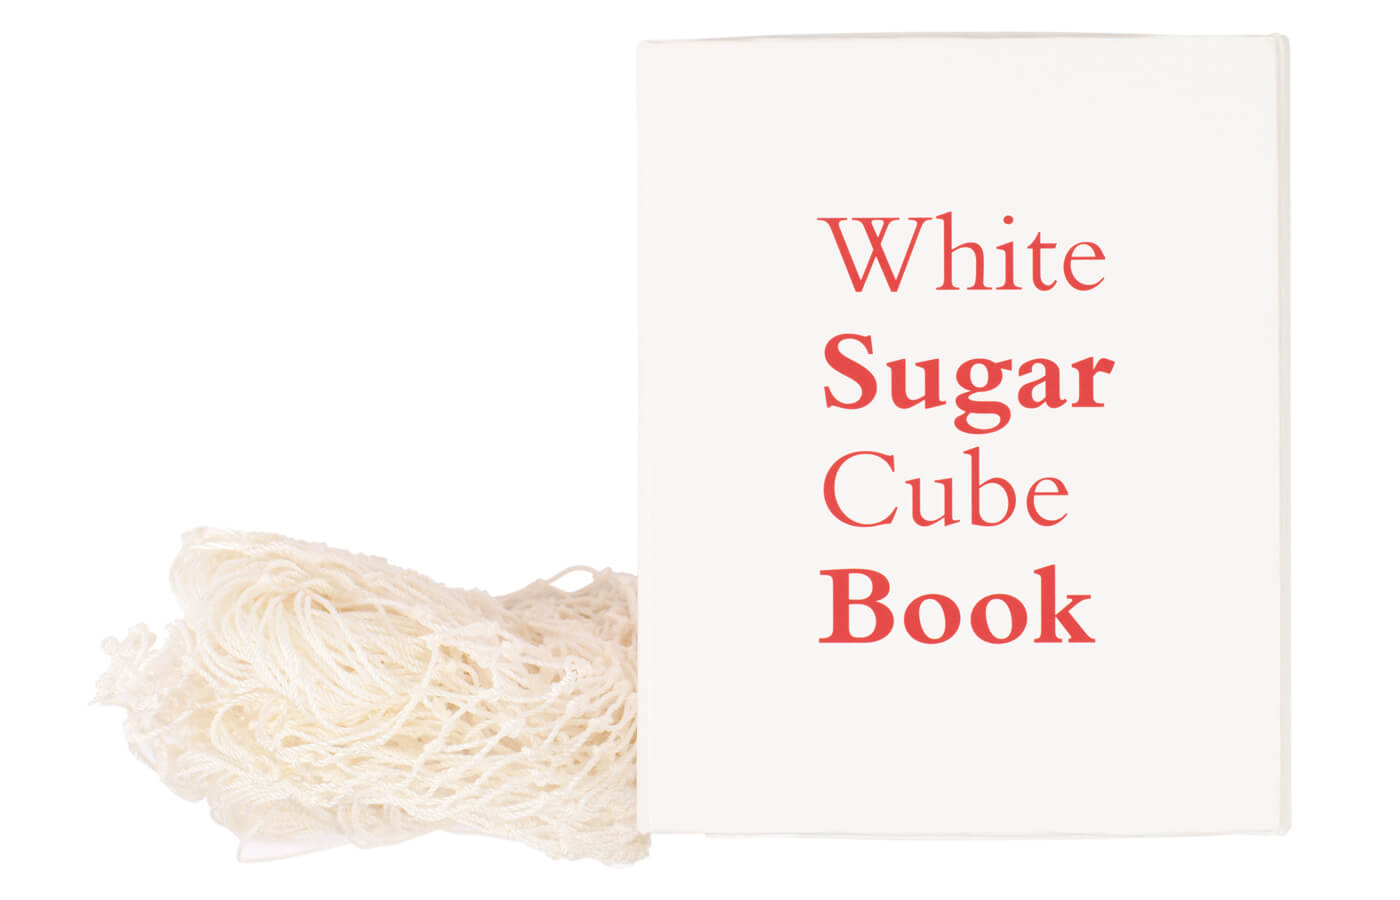 White Sugar Cube Book